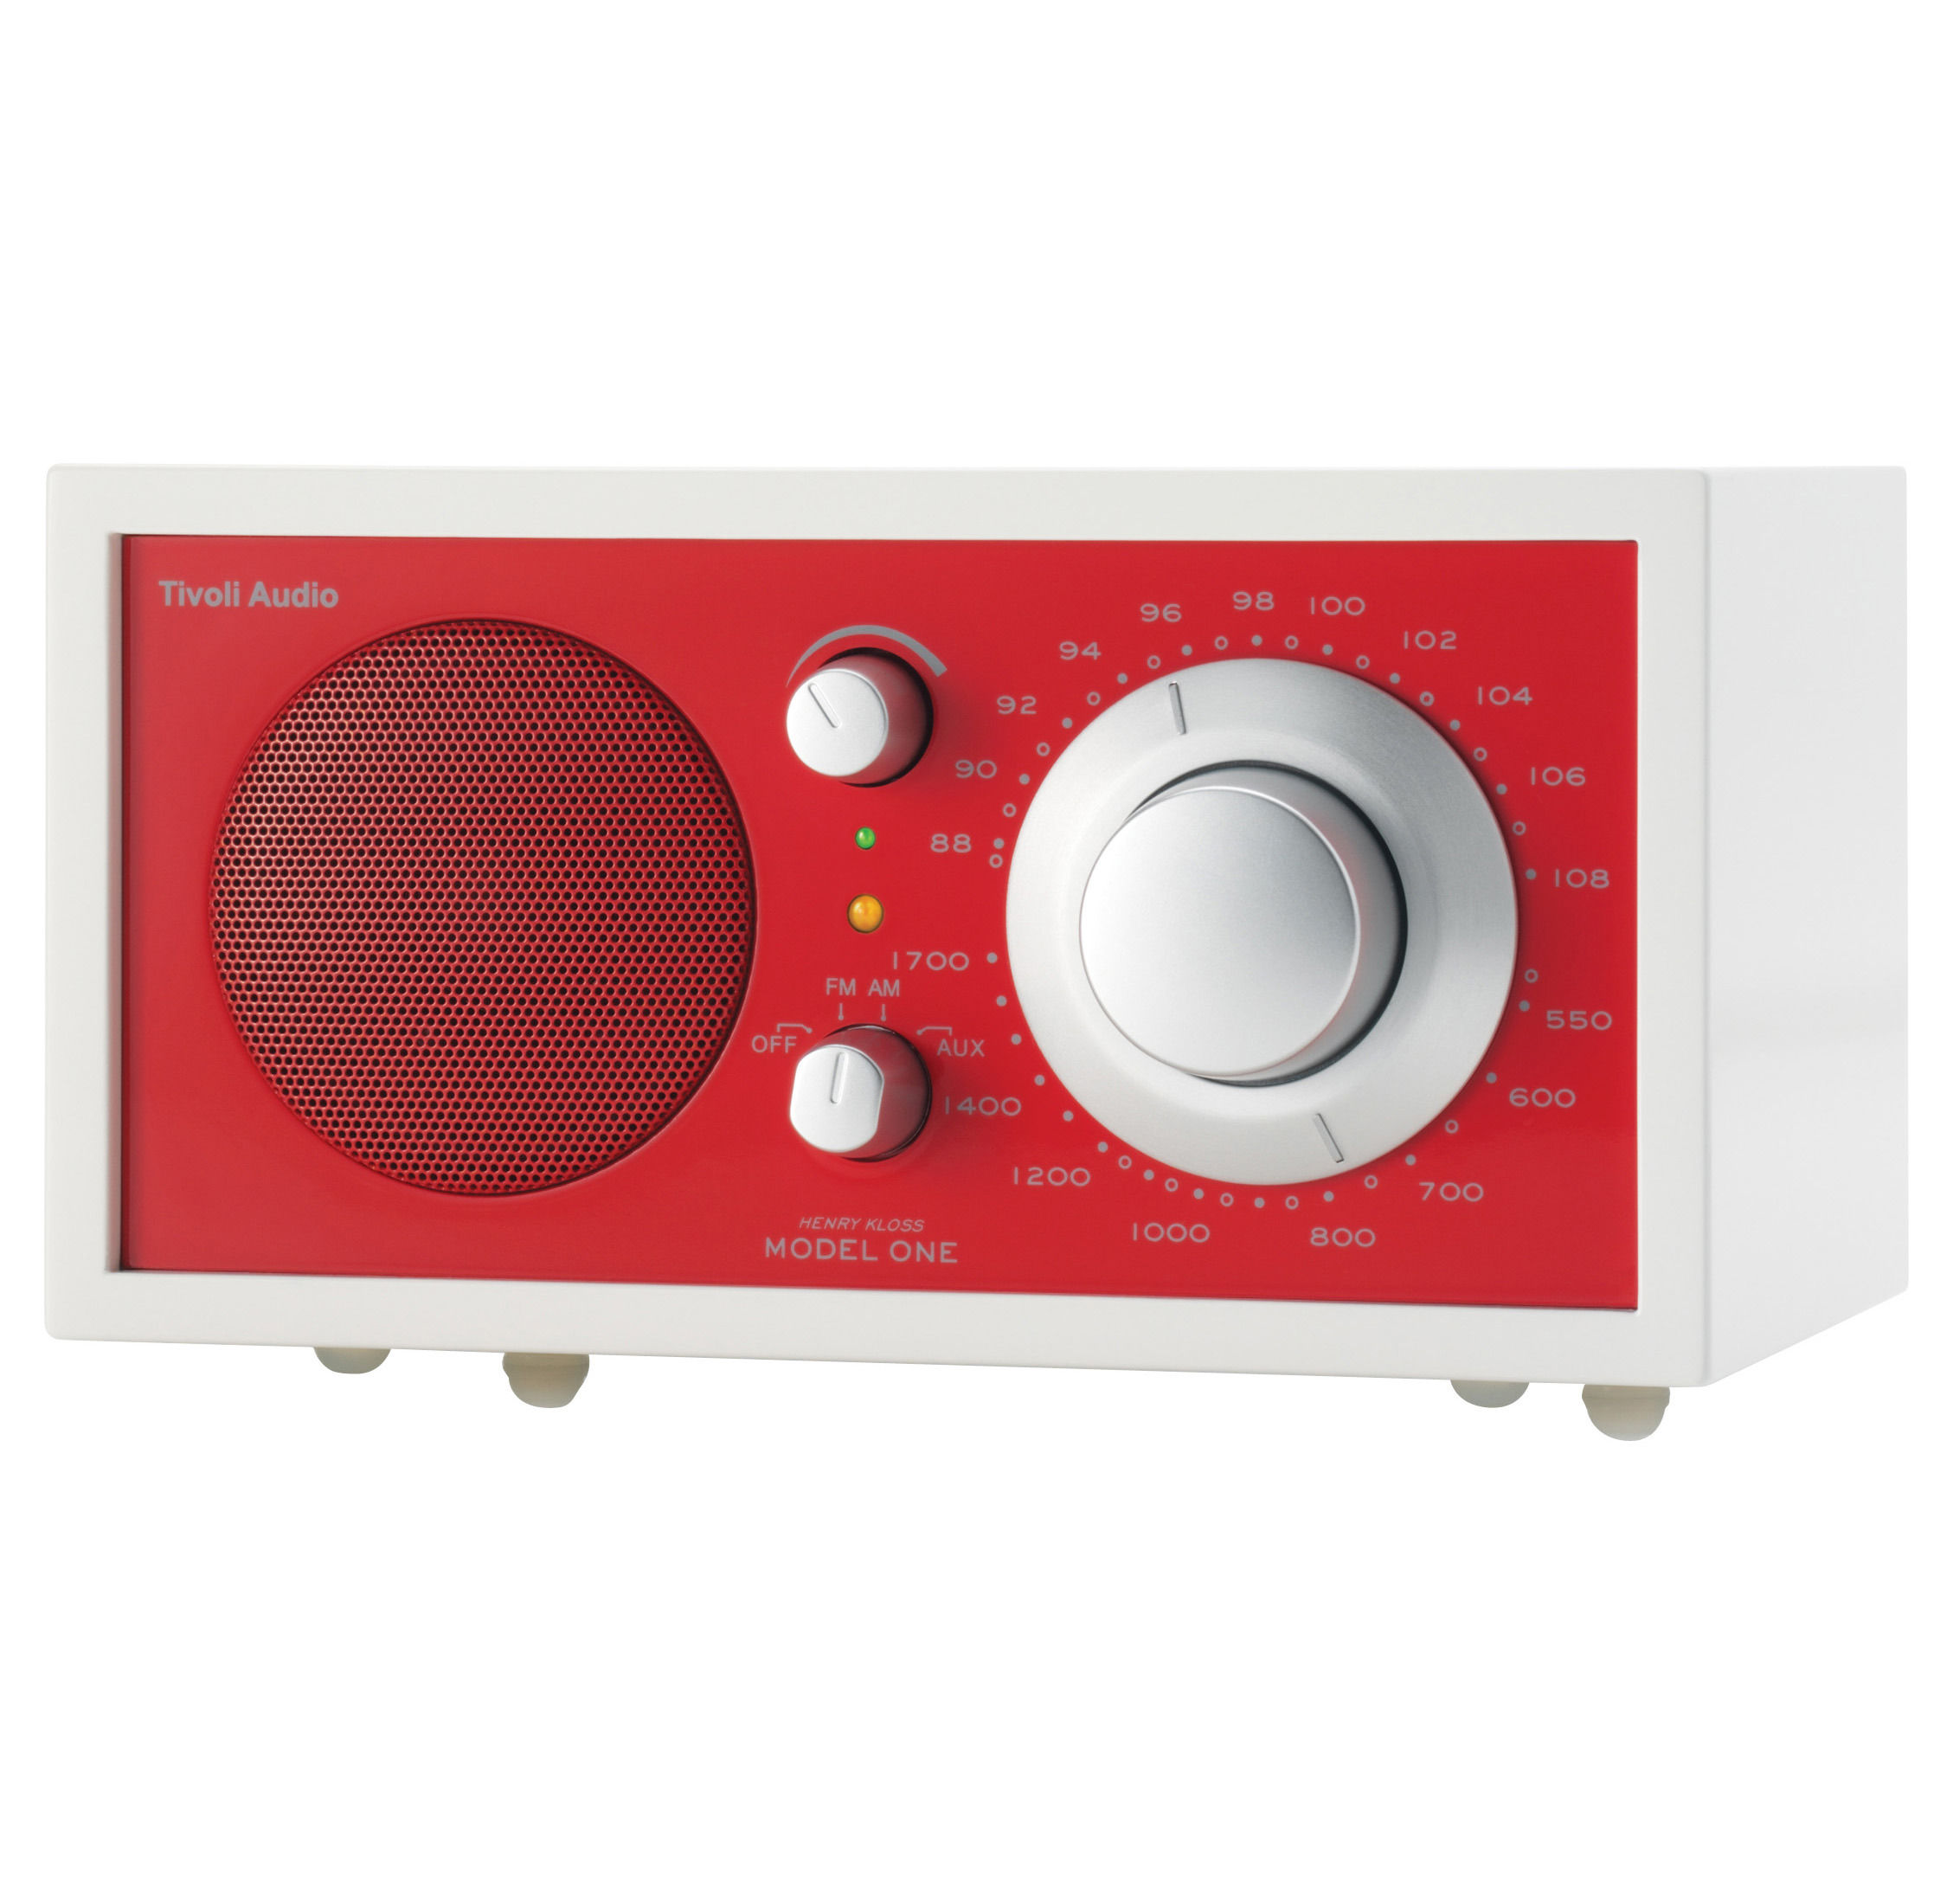 radio model one s rie frost white enceinte portative compatible ipod rouge tivoli audio. Black Bedroom Furniture Sets. Home Design Ideas